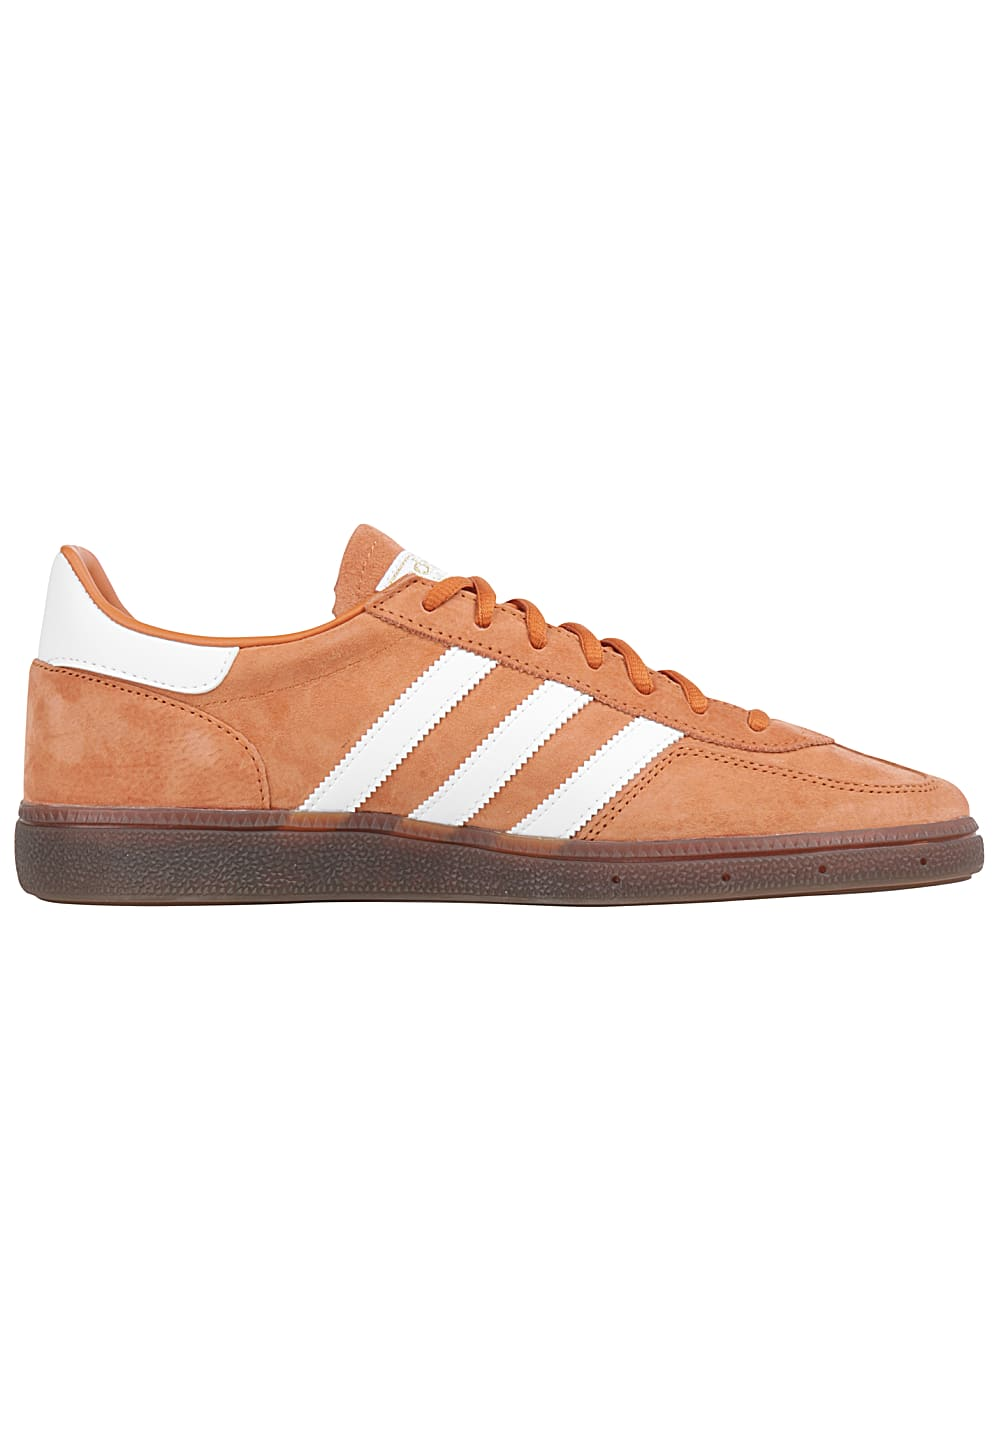 adidas Originals Handball Spezial Sneaker für Herren Orange